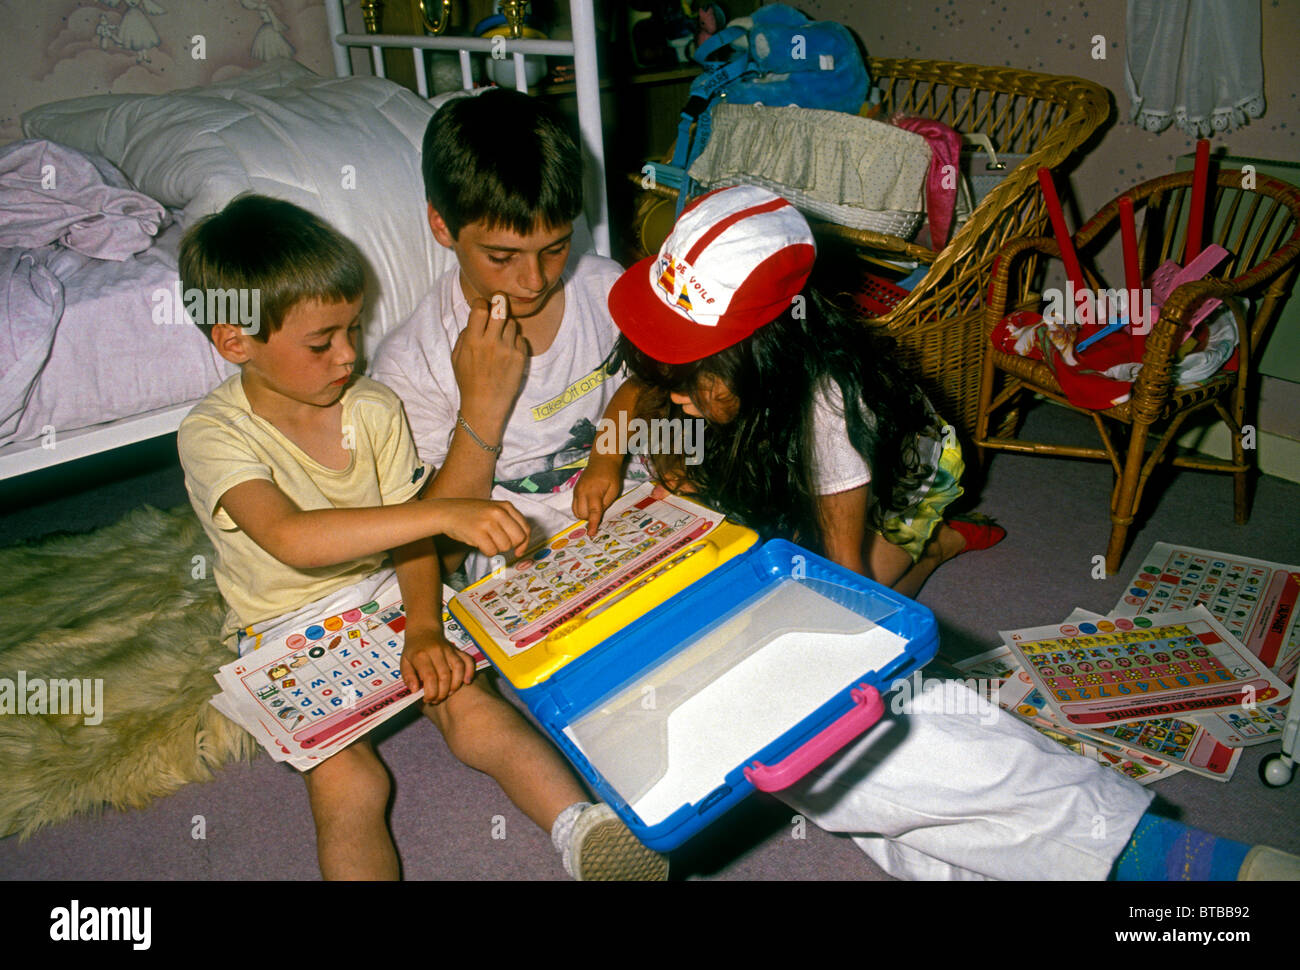 French people children boys and girl playing in bedroom town of Verneuil-sur-Seine Ile-de-France region France Europe - Stock Image